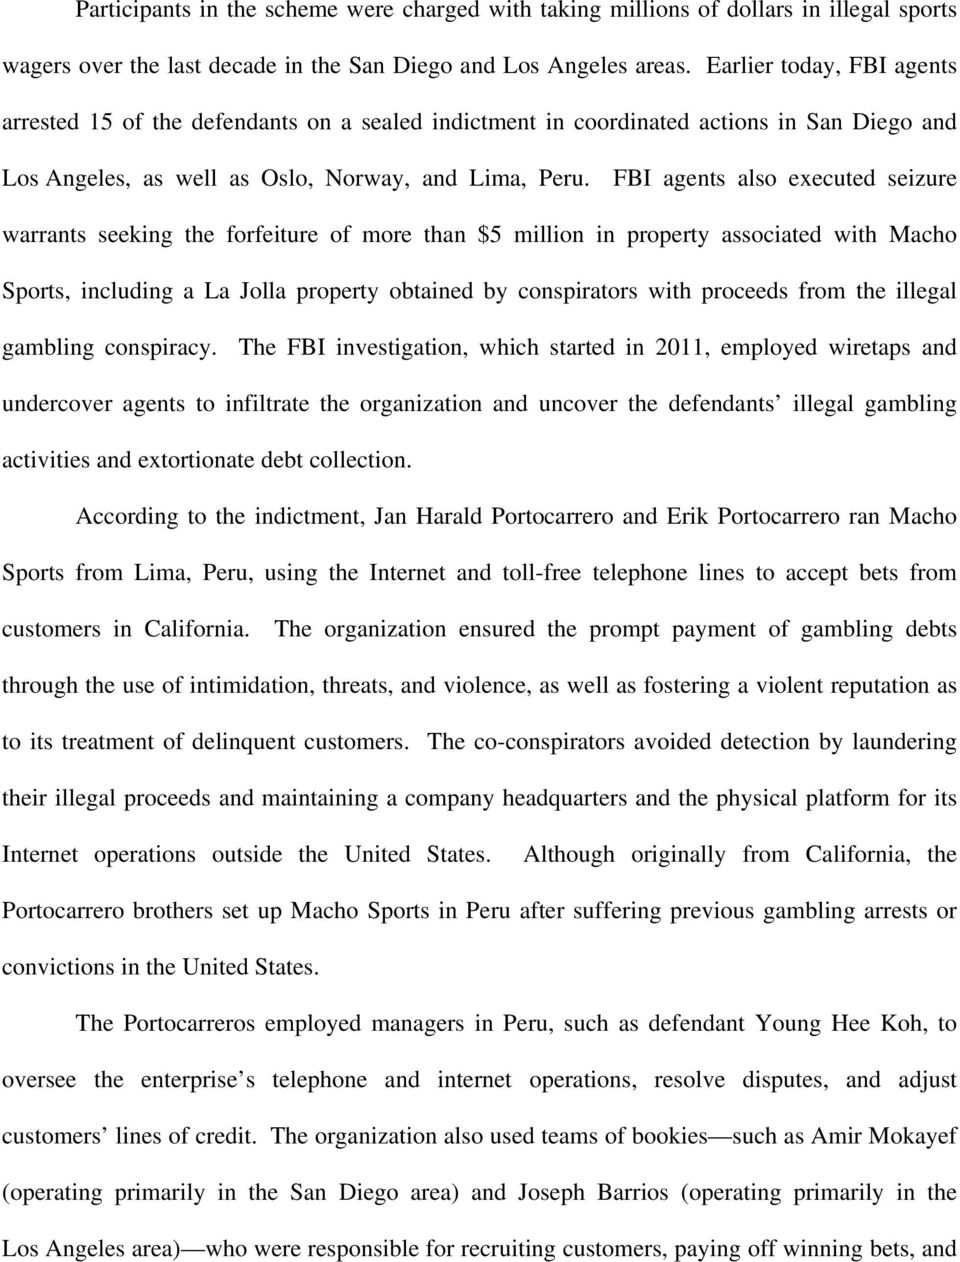 FBI agents also executed seizure warrants seeking the forfeiture of more than $5 million in property associated with Macho Sports, including a La Jolla property obtained by conspirators with proceeds